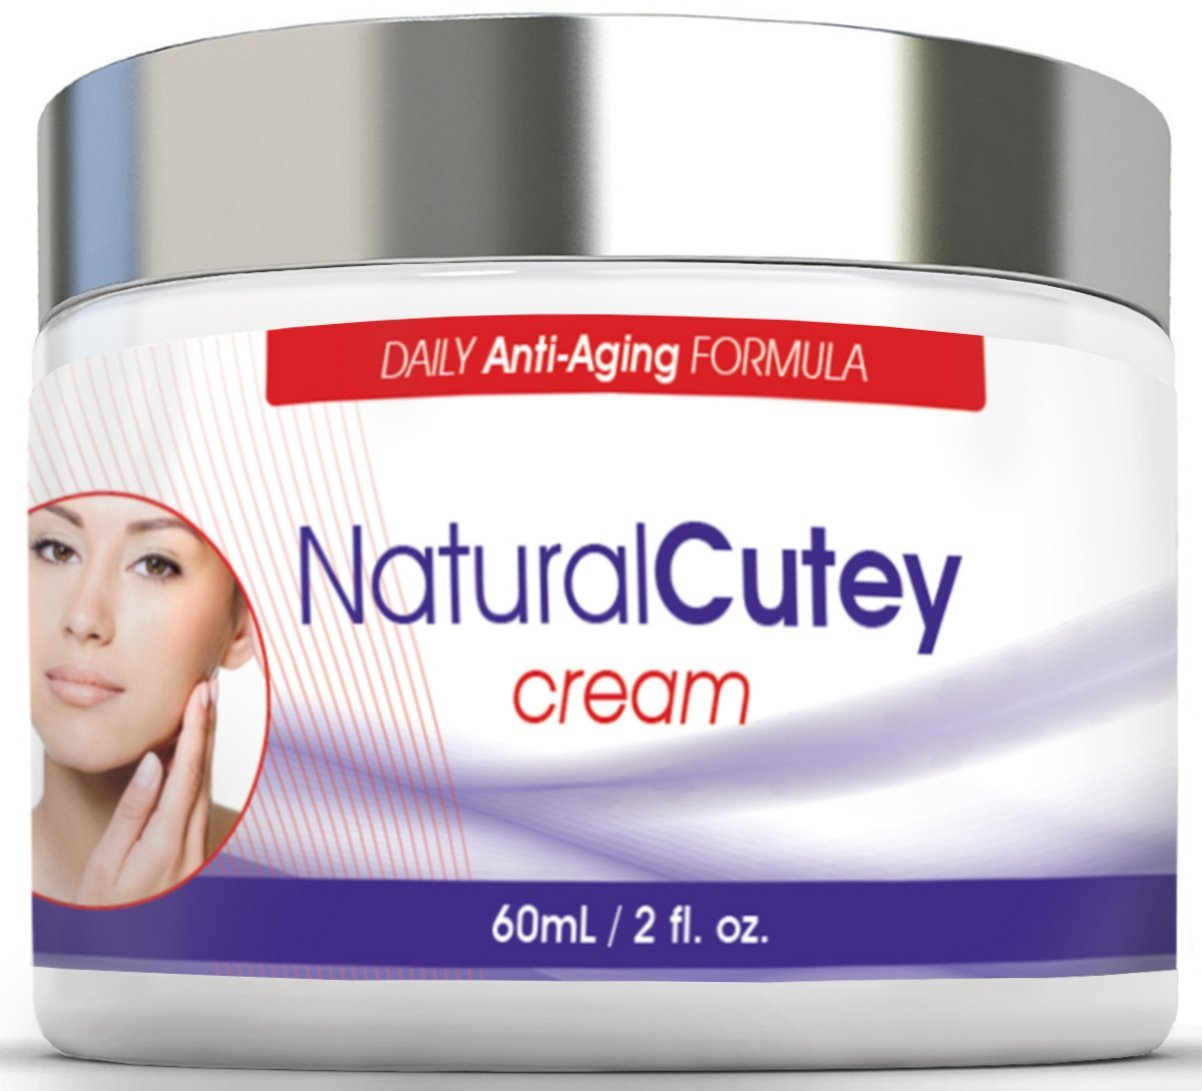 Natural Cutey is The Best All-In-One Night & Day Anti Aging Cream Moisturizer for Women and Men- All Natural & Organic Face and Eye Cream- Reduces Fine Lines & Deep Wrinkles, Promotes Cell Regeneration with 100% Satisfaction GUARANTEED...